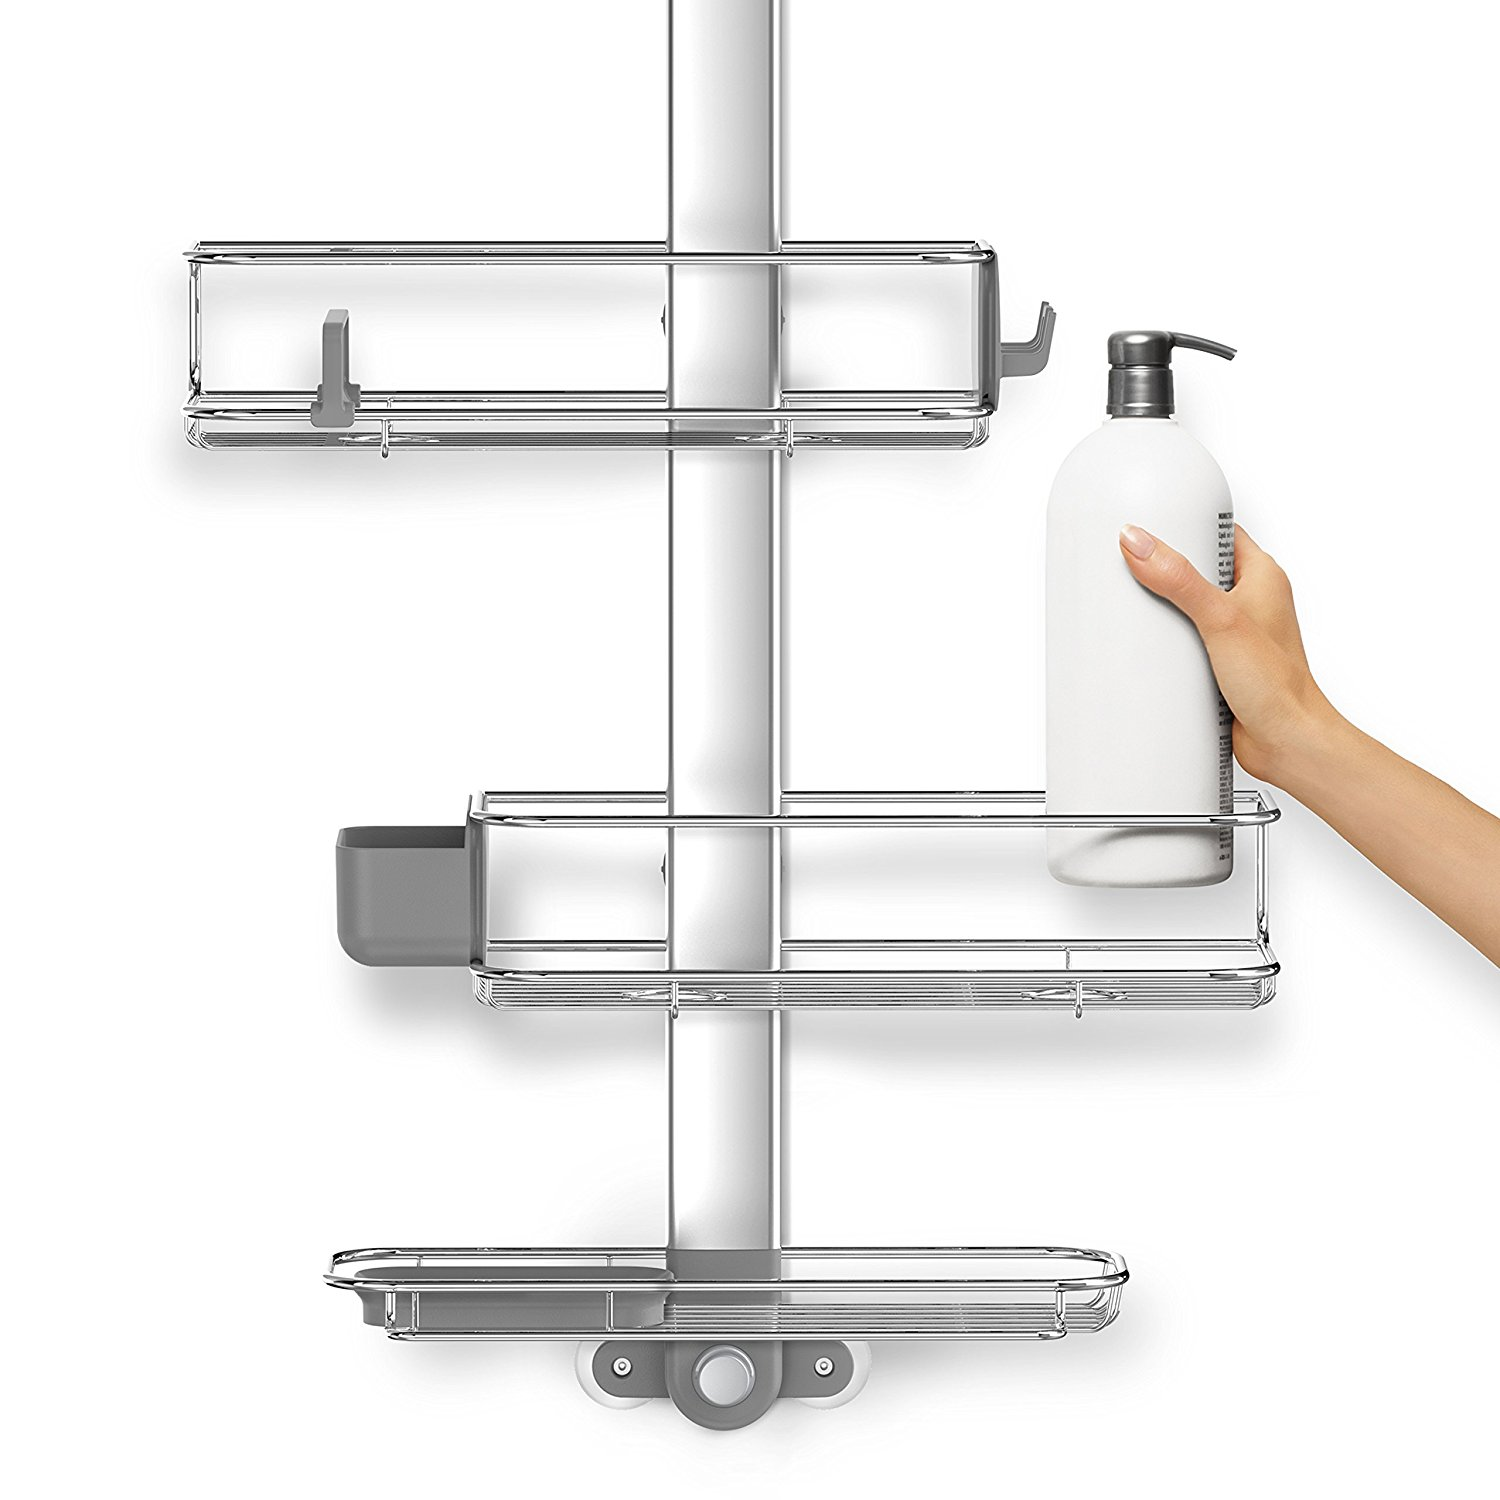 Have A Best Shower Caddy with Simplehuman Shower Caddy: Simplehuman Stainless Steel Tension Shower Caddy | Simplehuman Shower Caddy Tension | Simplehuman Shower Caddy